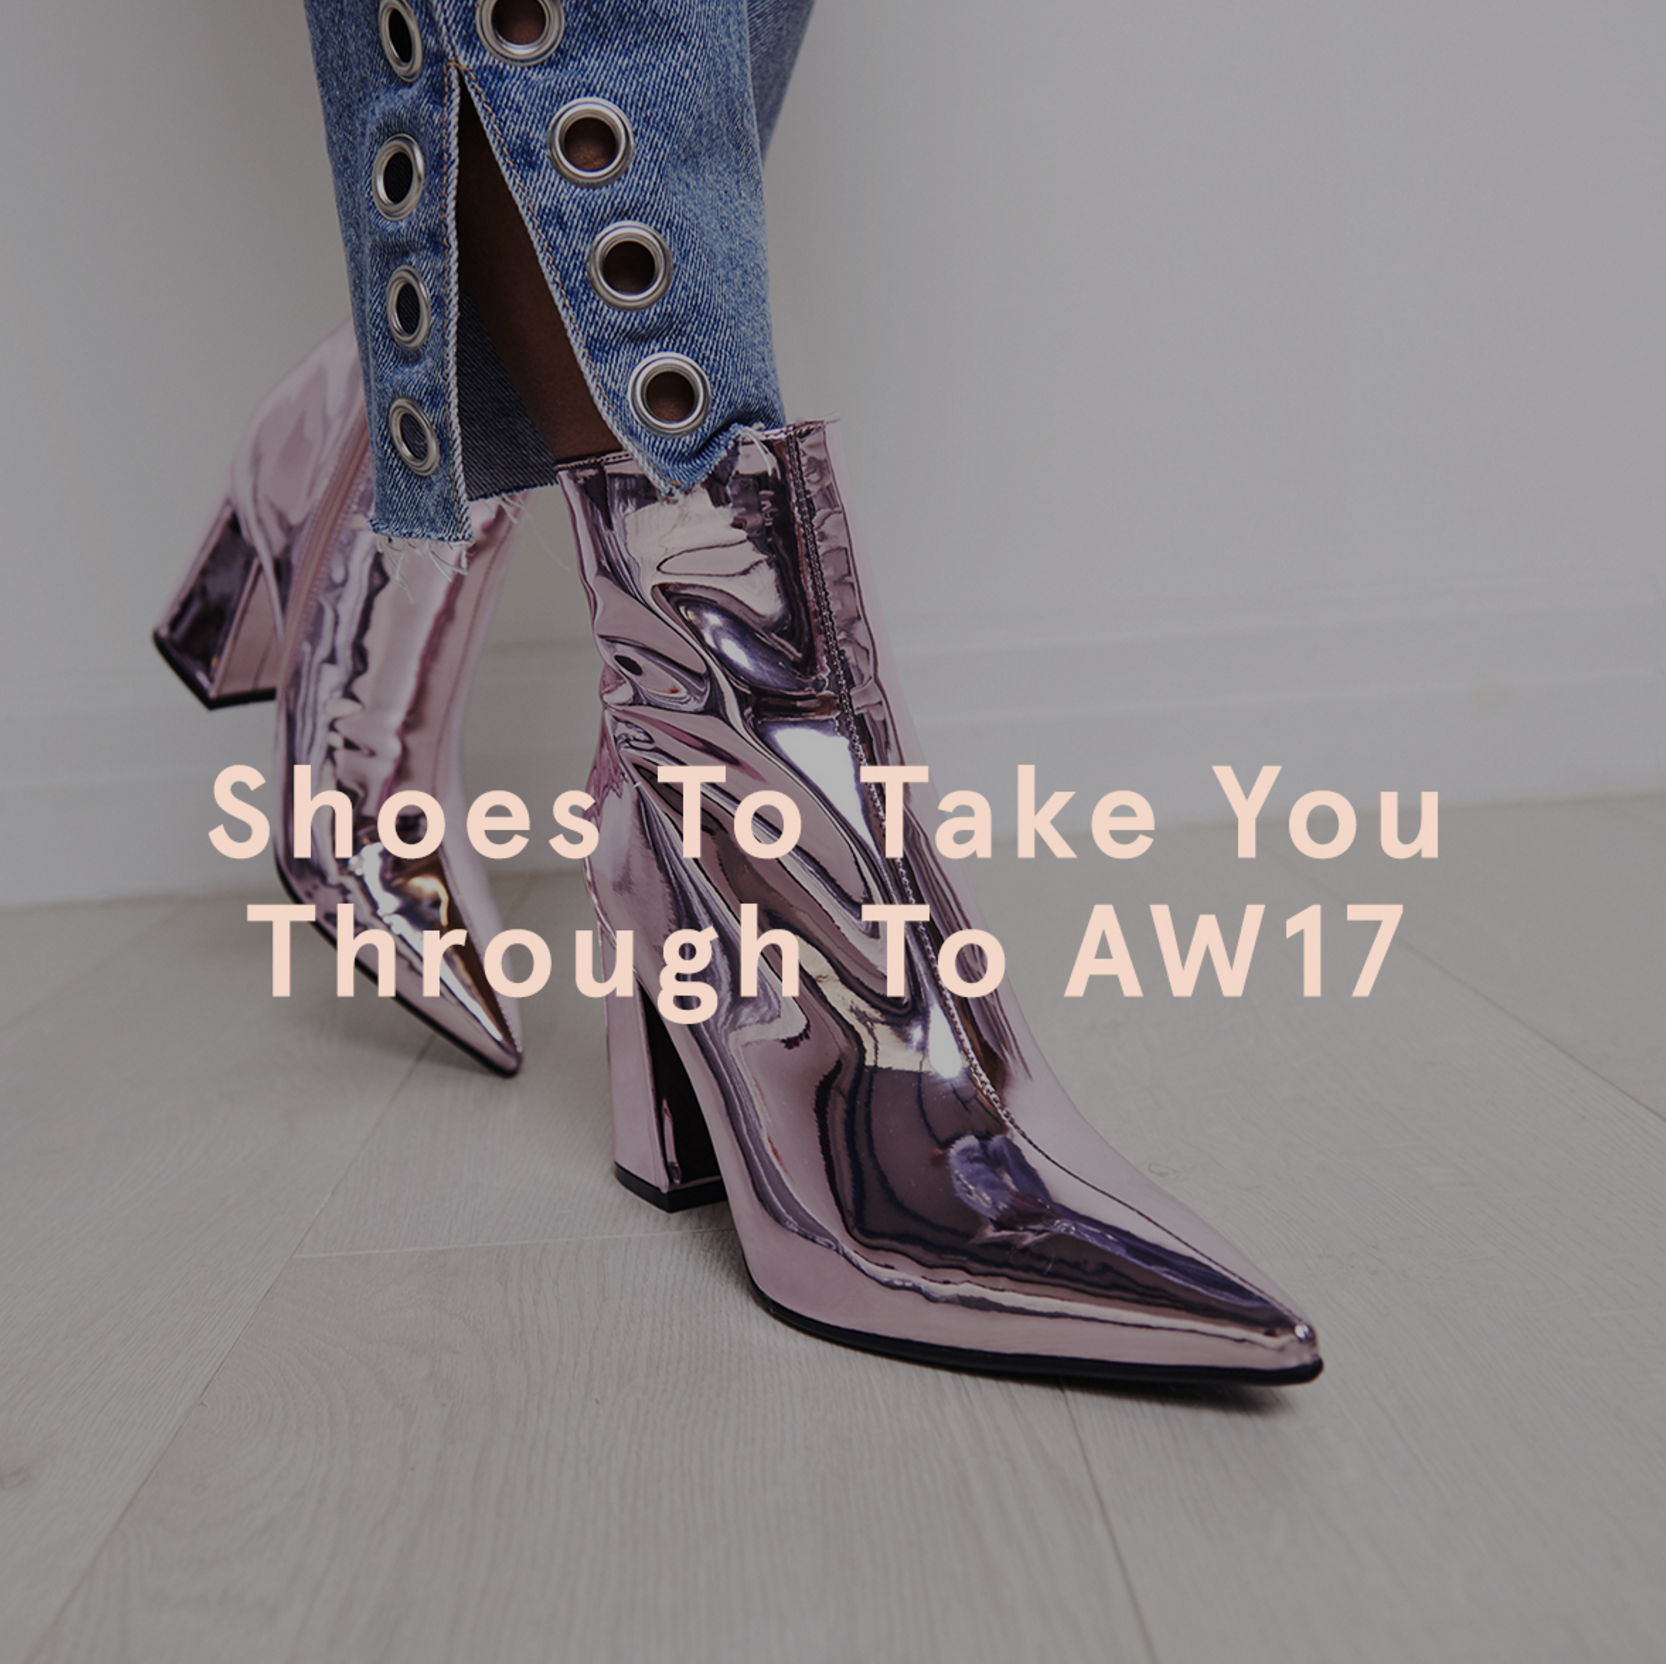 AW17 Shoes